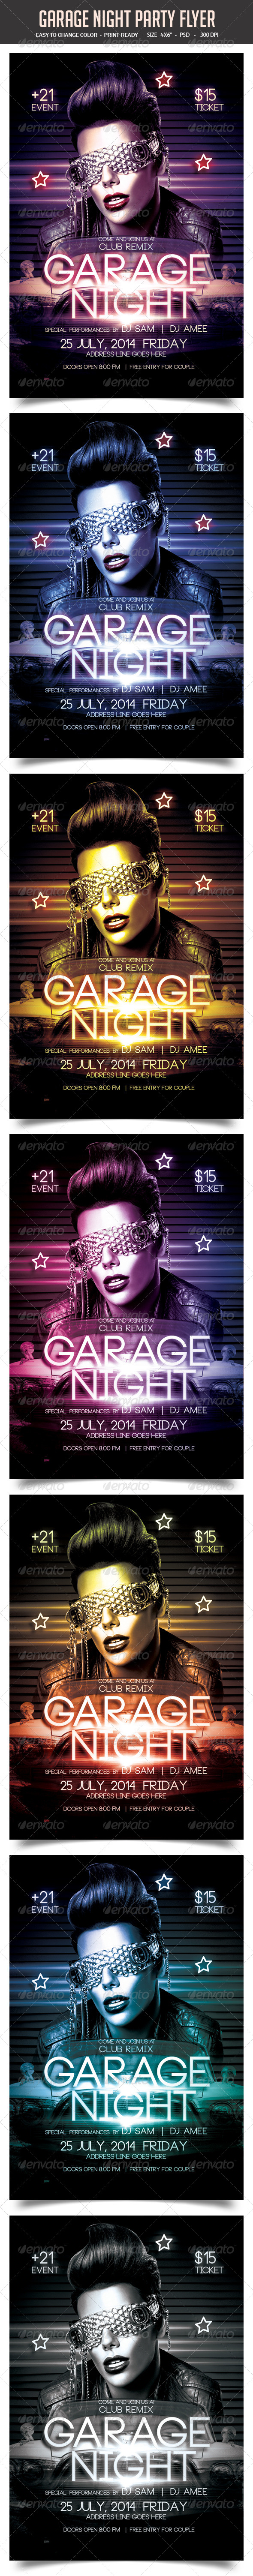 GraphicRiver Garage Night Party Flyer 8302911